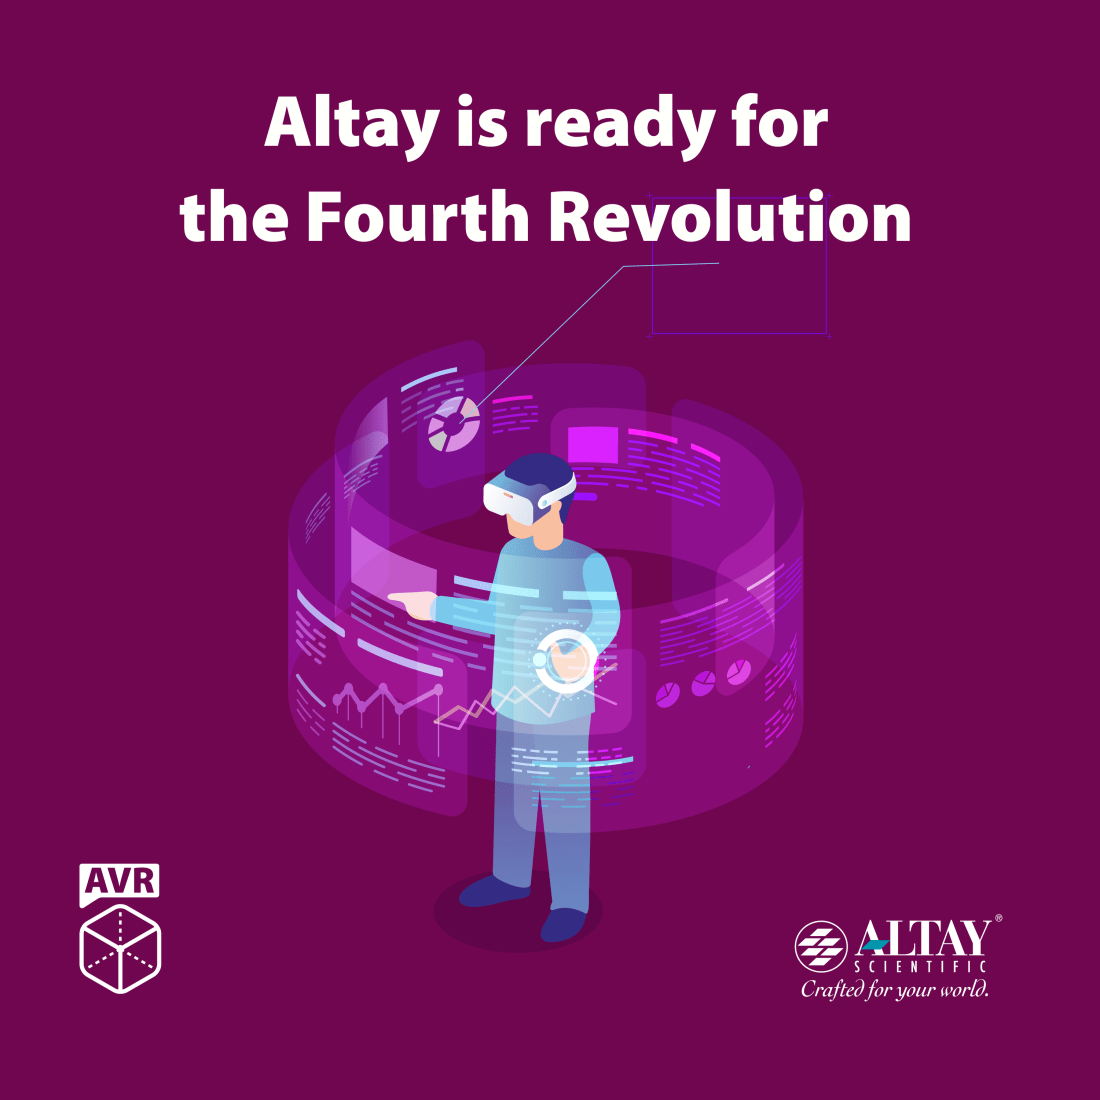 Altay Scientific Crafted For Your World